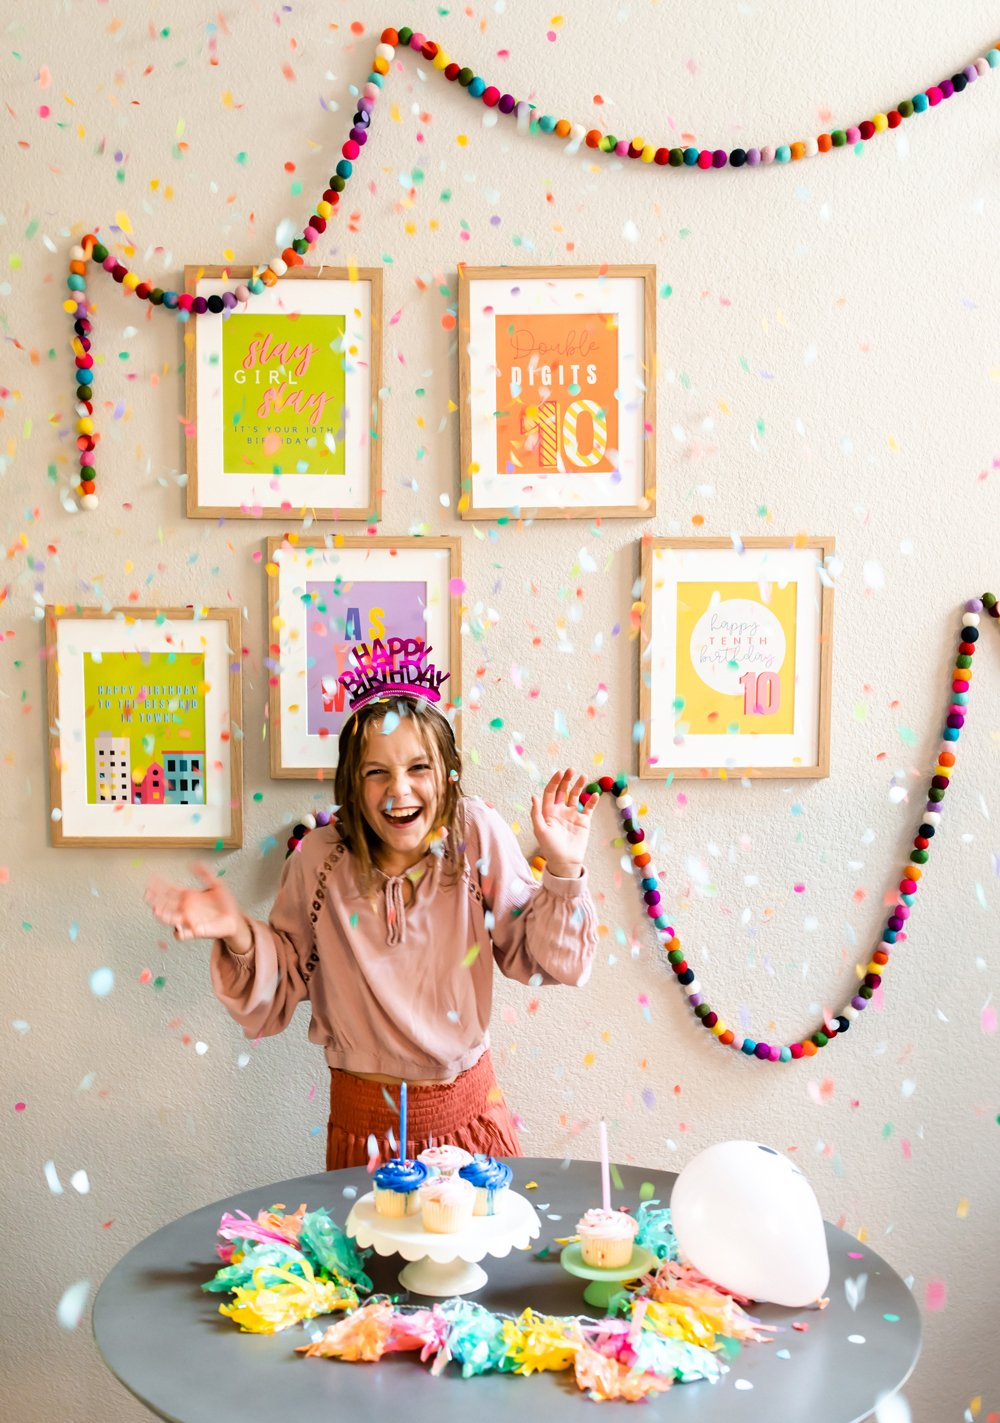 10th Birthday Party Decor Poster prints